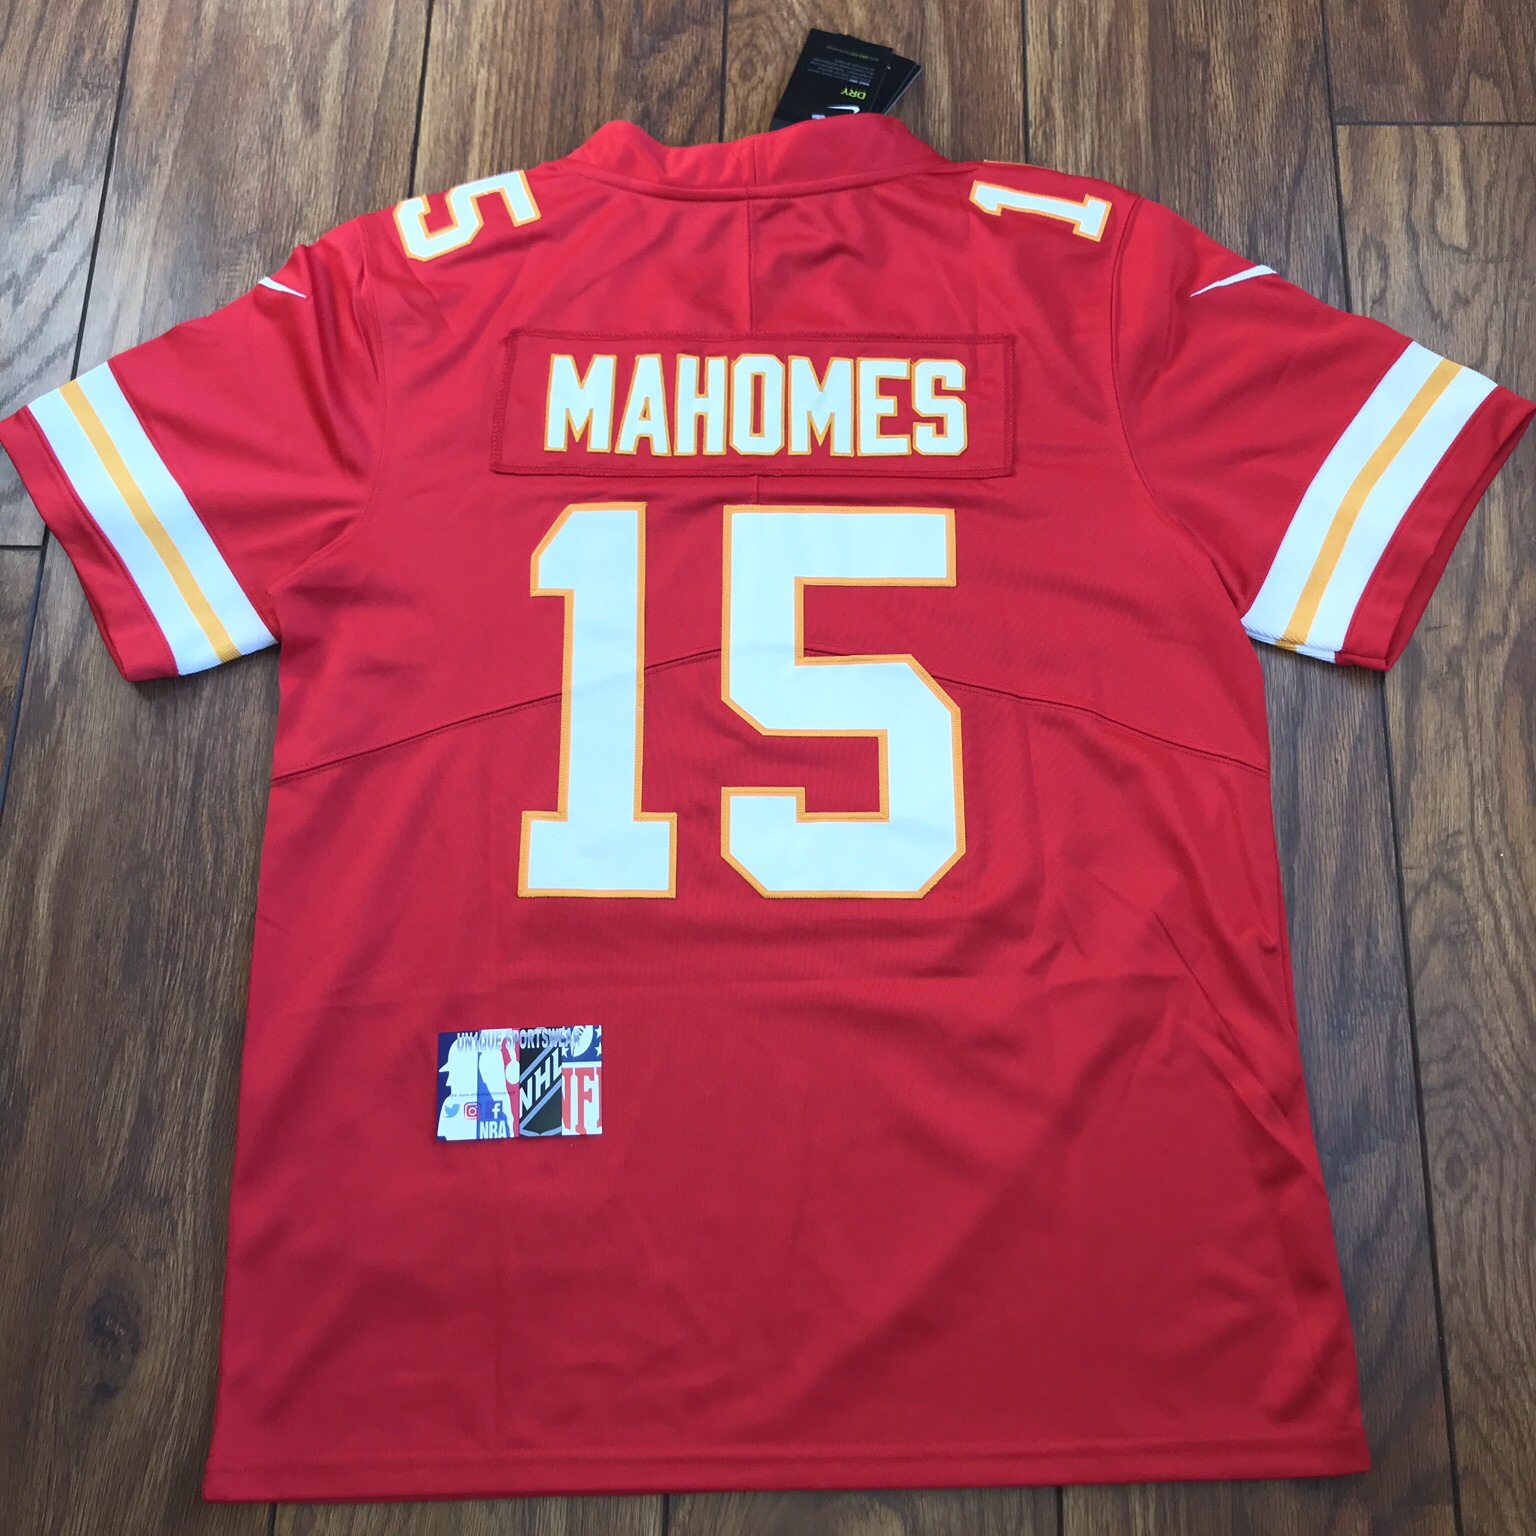 free shipping 512c3 7f9b6 Patrick mahomes - Kansas City Chiefs red nfl... - Depop